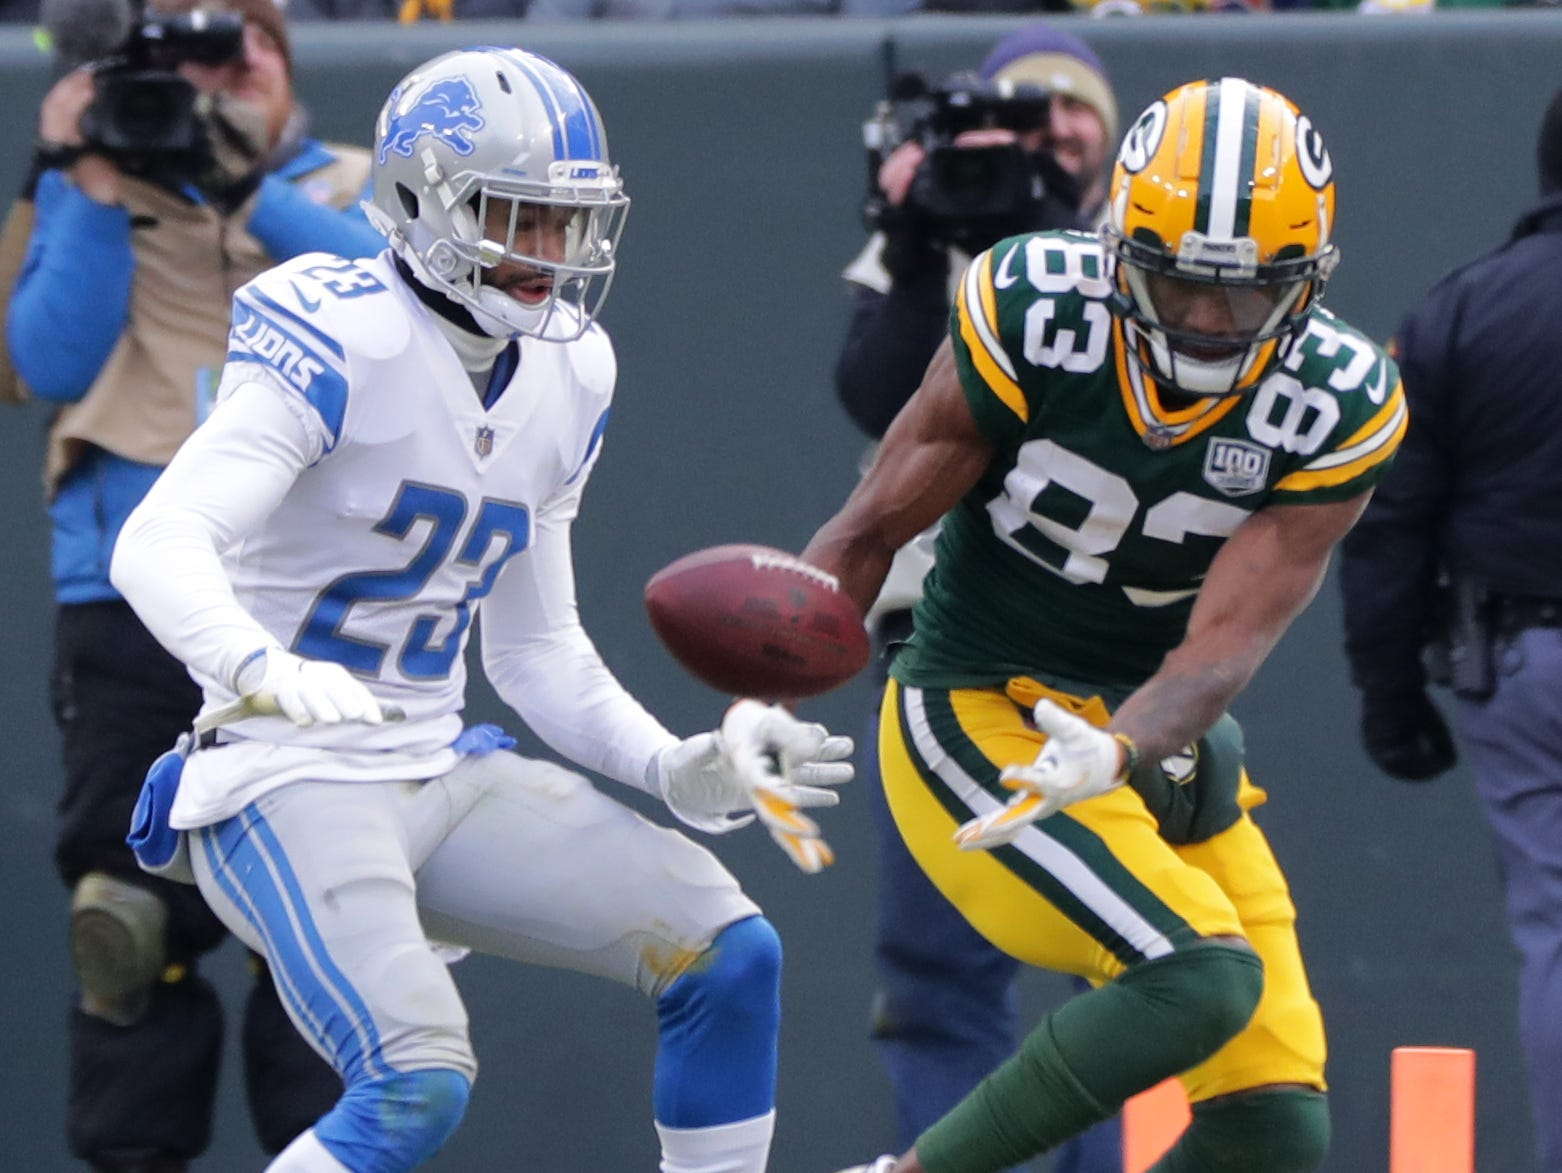 Green Bay Packers wide receiver Marquez Valdes-Scantling (83) is unable to grab a redemption while being covered by Detroit Lions cornerback Darius Slay (23) during the third quarter of their game Sunday, December 30, 2018 at Lambeau Field in Green Bay, Wis. The Detroit Lions beat the Green Bay Packers 31-0.  MARK HOFFMAN/MILWAUKEE JOURNAL SENTINEL